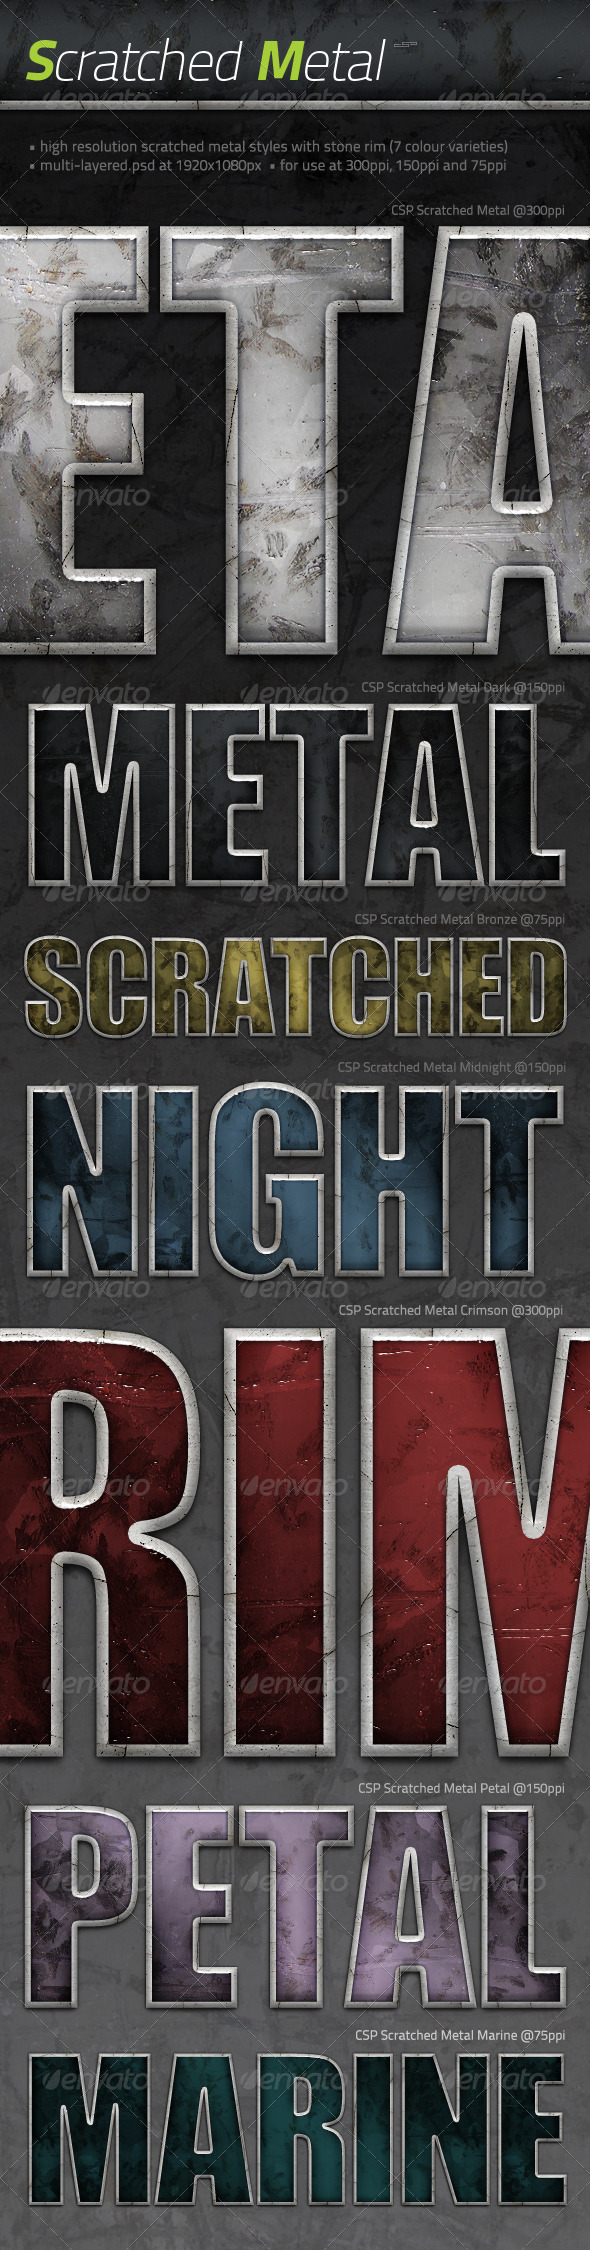 7x Scratched Metals - Text Effects Styles